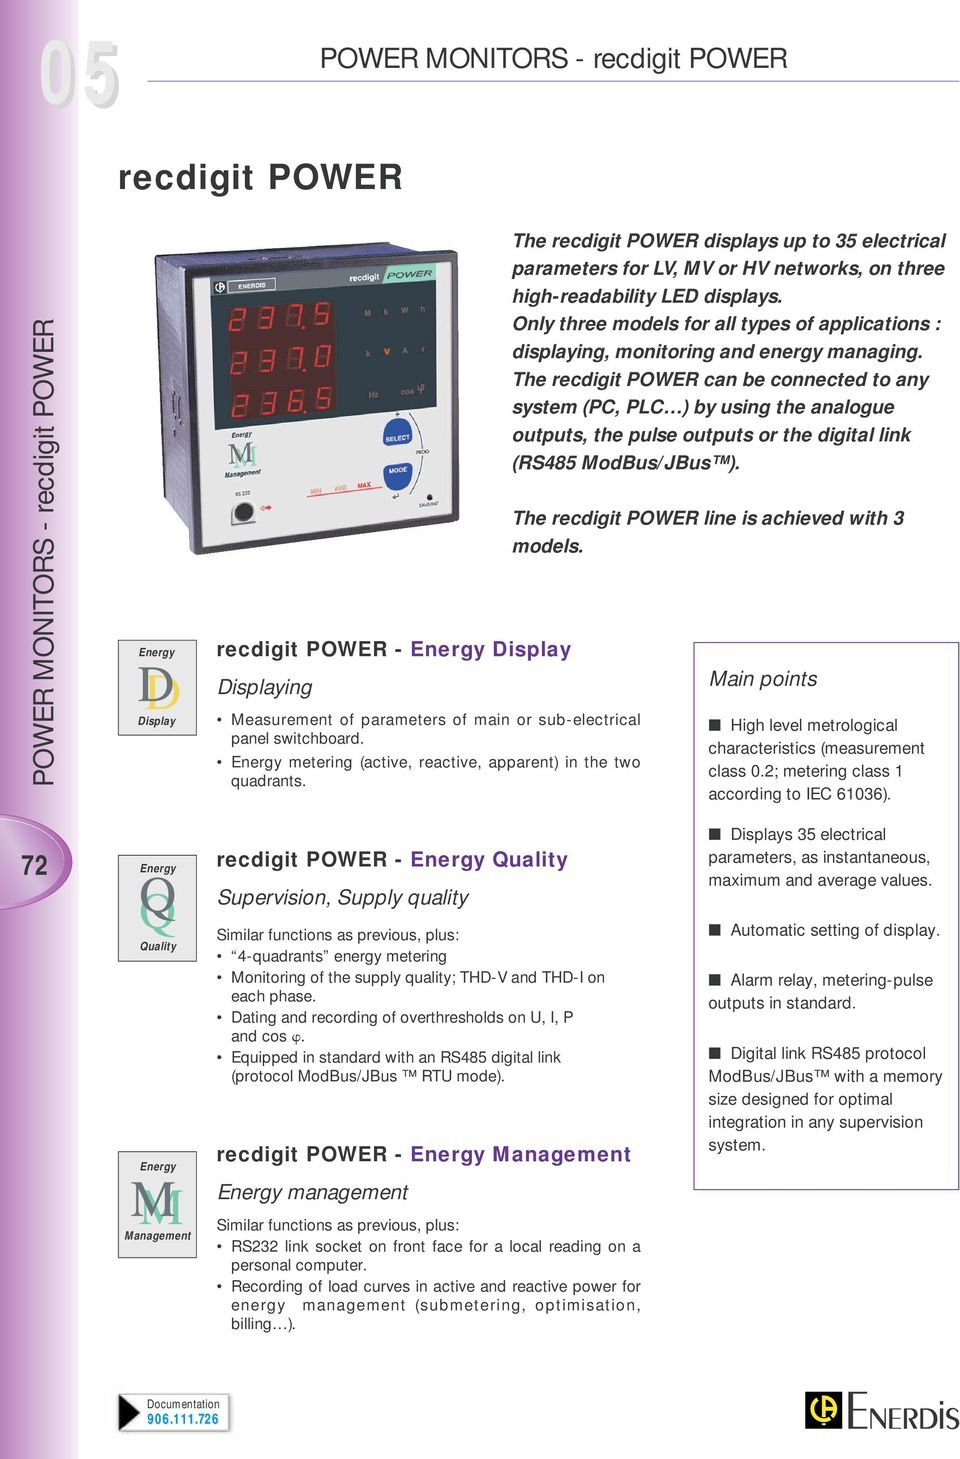 Only three models for all types of applications : displaying, monitoring and energy managing.